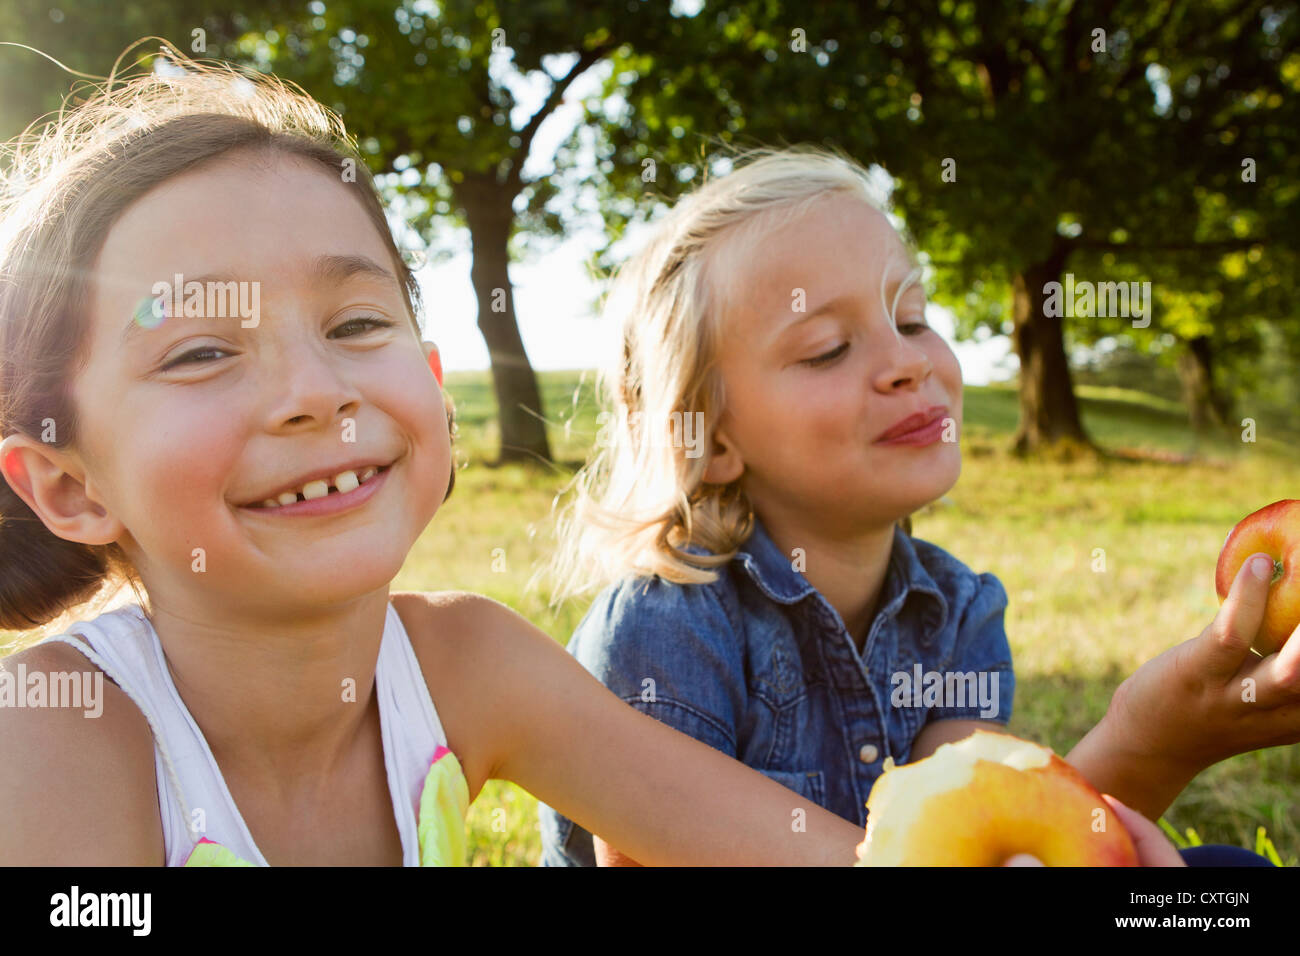 Laughing girls eating apples outdoors - Stock Image